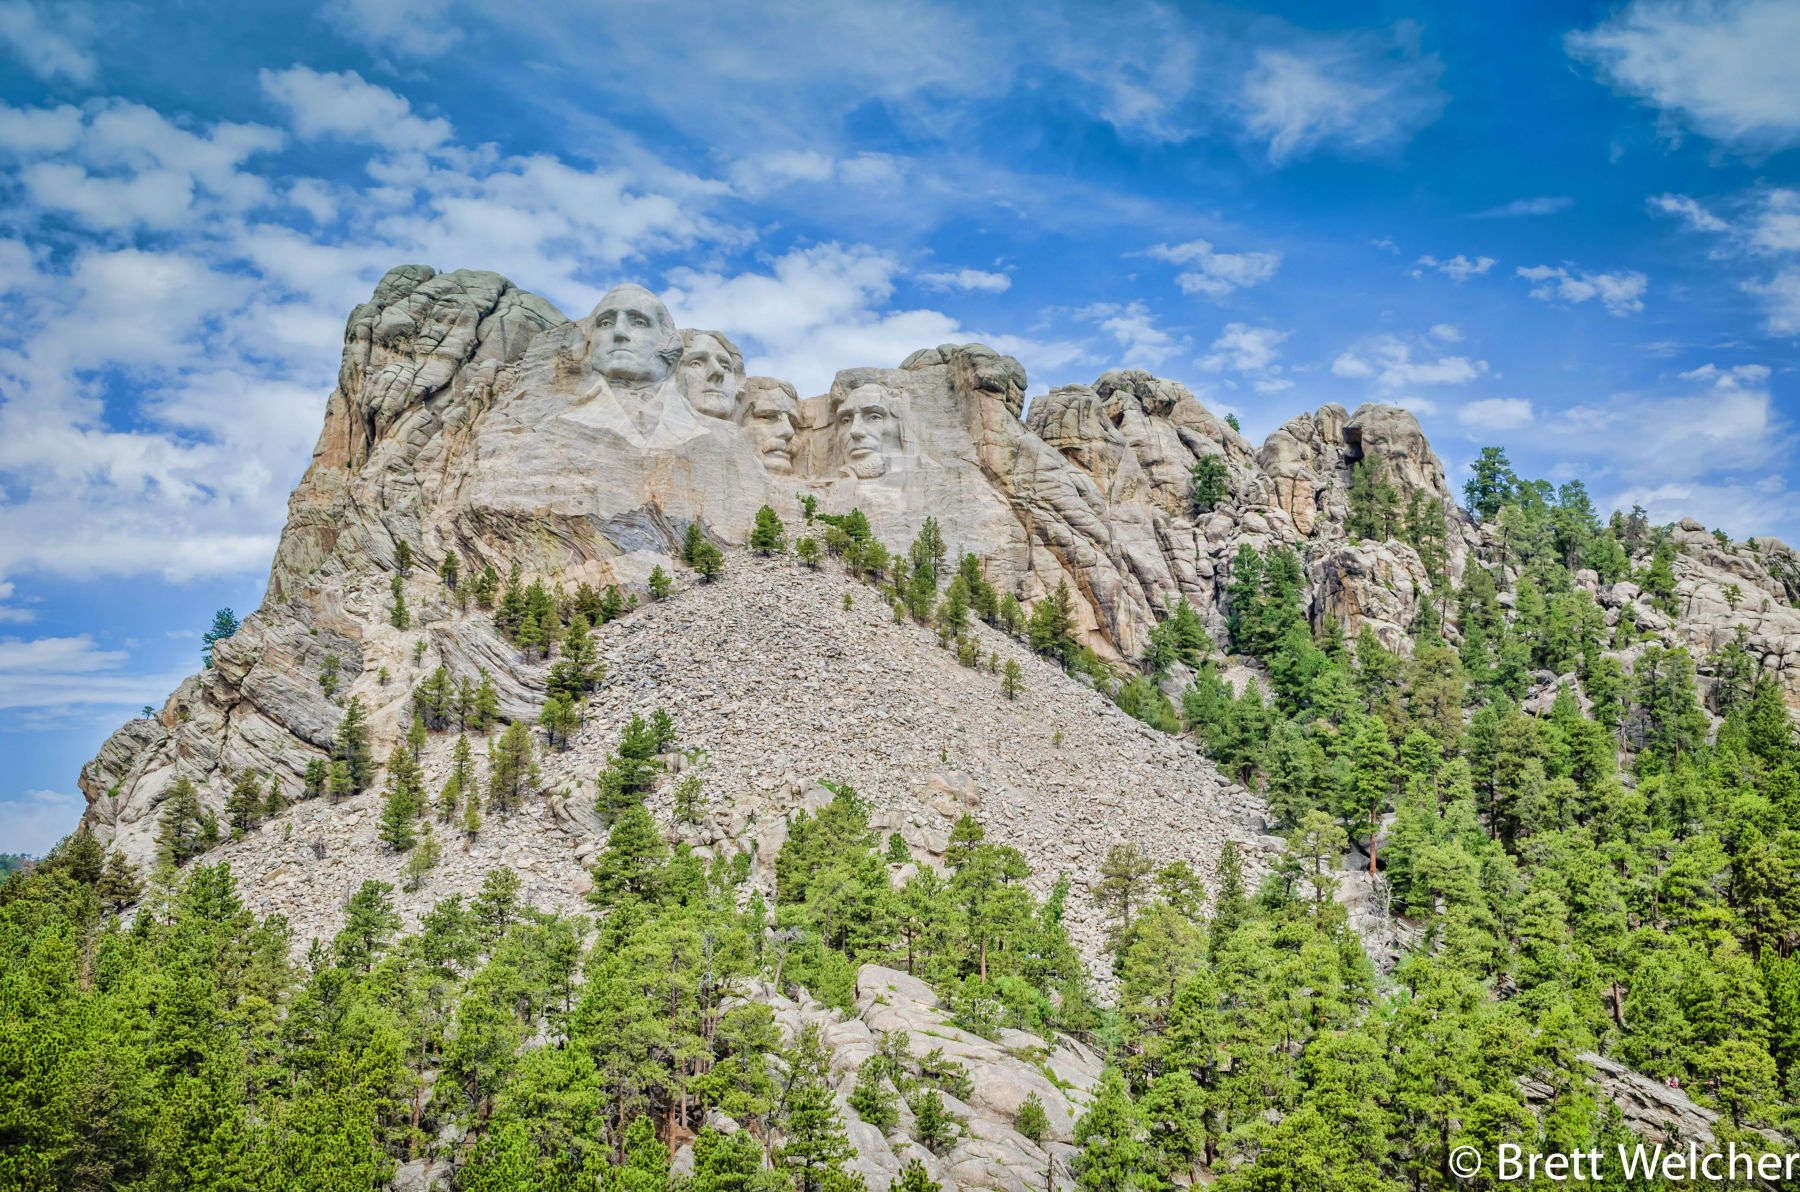 Mount Rushmore National Memorial is a sculpture carved into the granite face of Mount Rushmore near Keystone, South Dakota. Sculpted by Danish-American Gutzon Borglum and his son, Lincoln Borglum, Mount Rushmore features 60-foot sculptures of the heads of